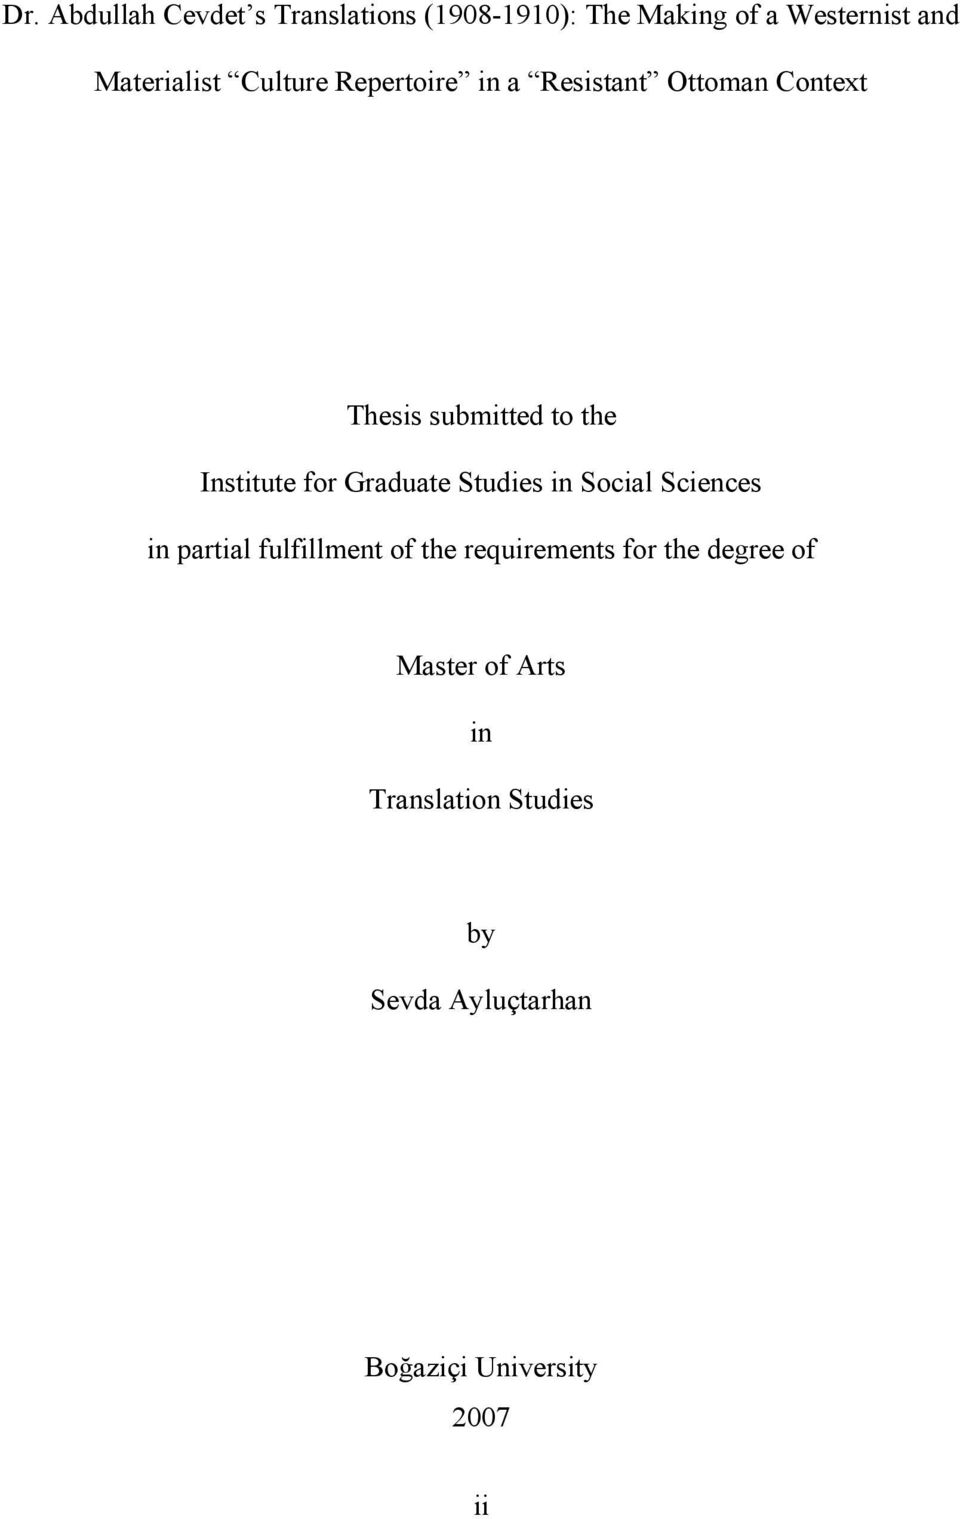 Graduate Studies in Social Sciences in partial fulfillment of the requirements for the